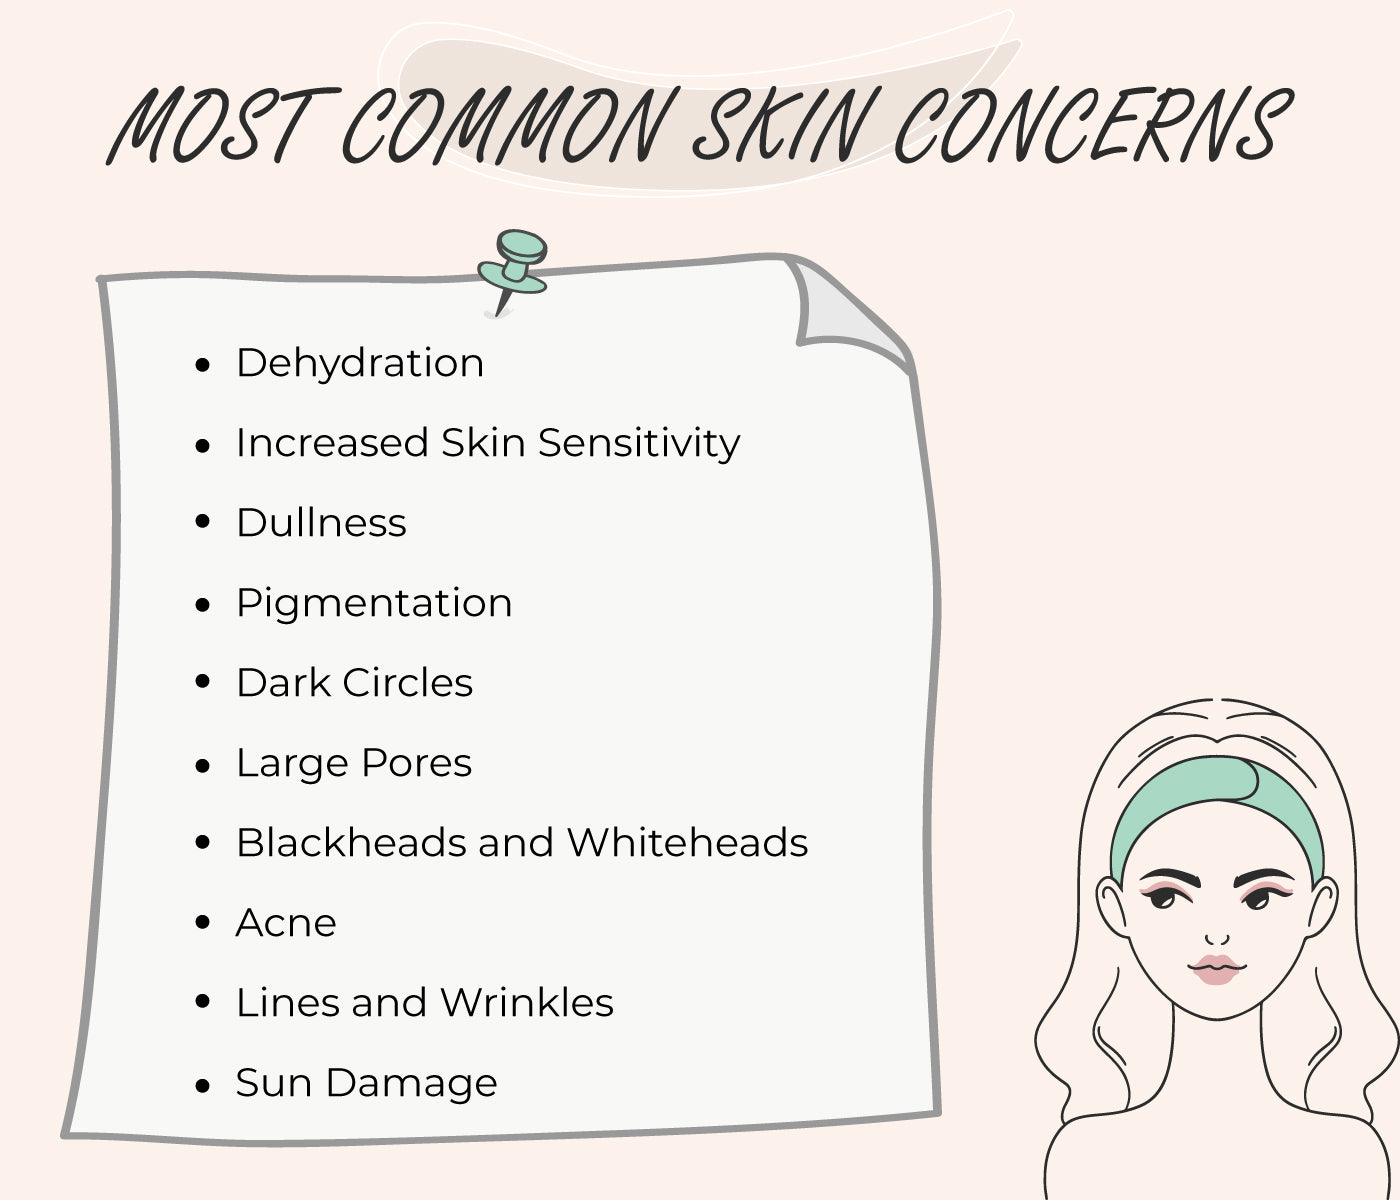 This is an image of most common skin concerns on www.sublimelife.in